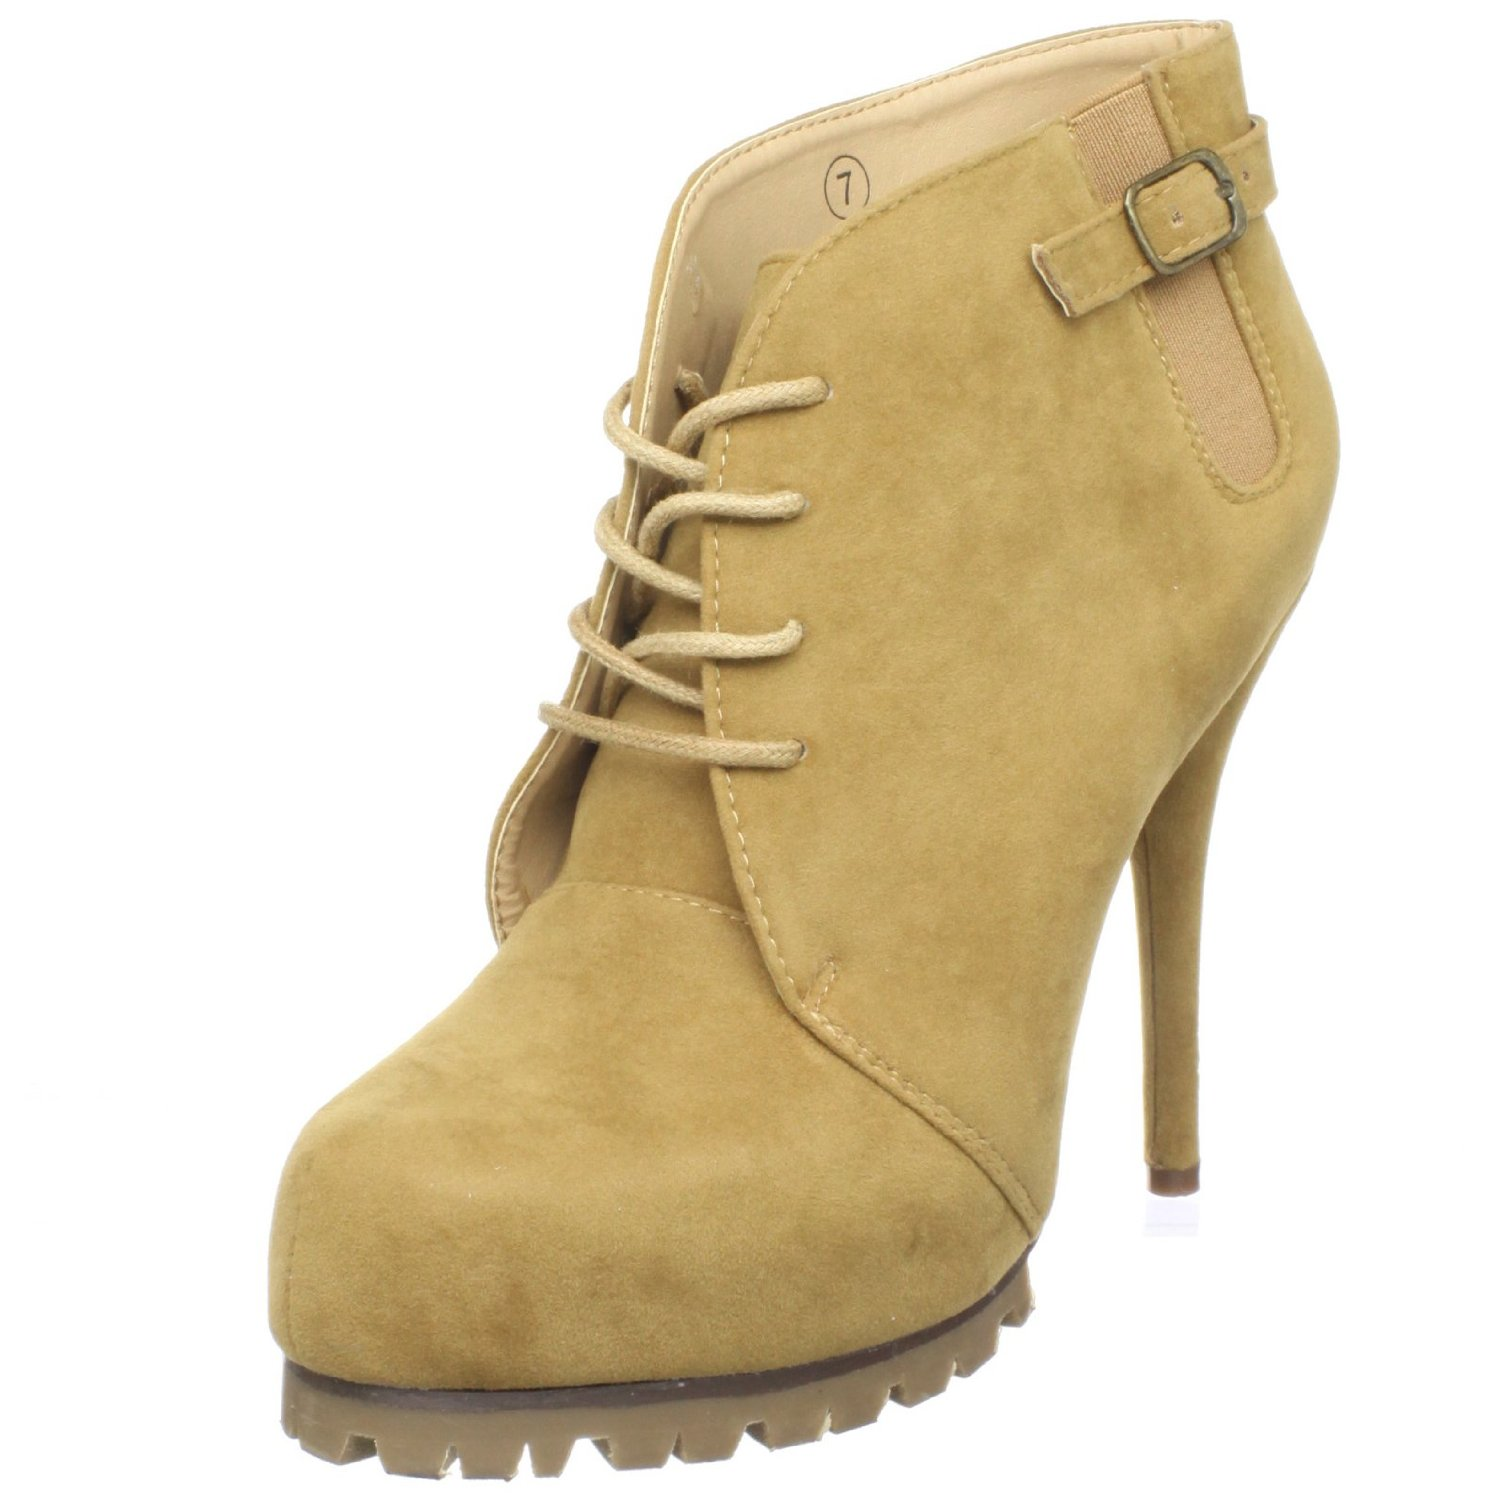 Browse and shop a few pair of chic, nude/natural toned boots below and get ...